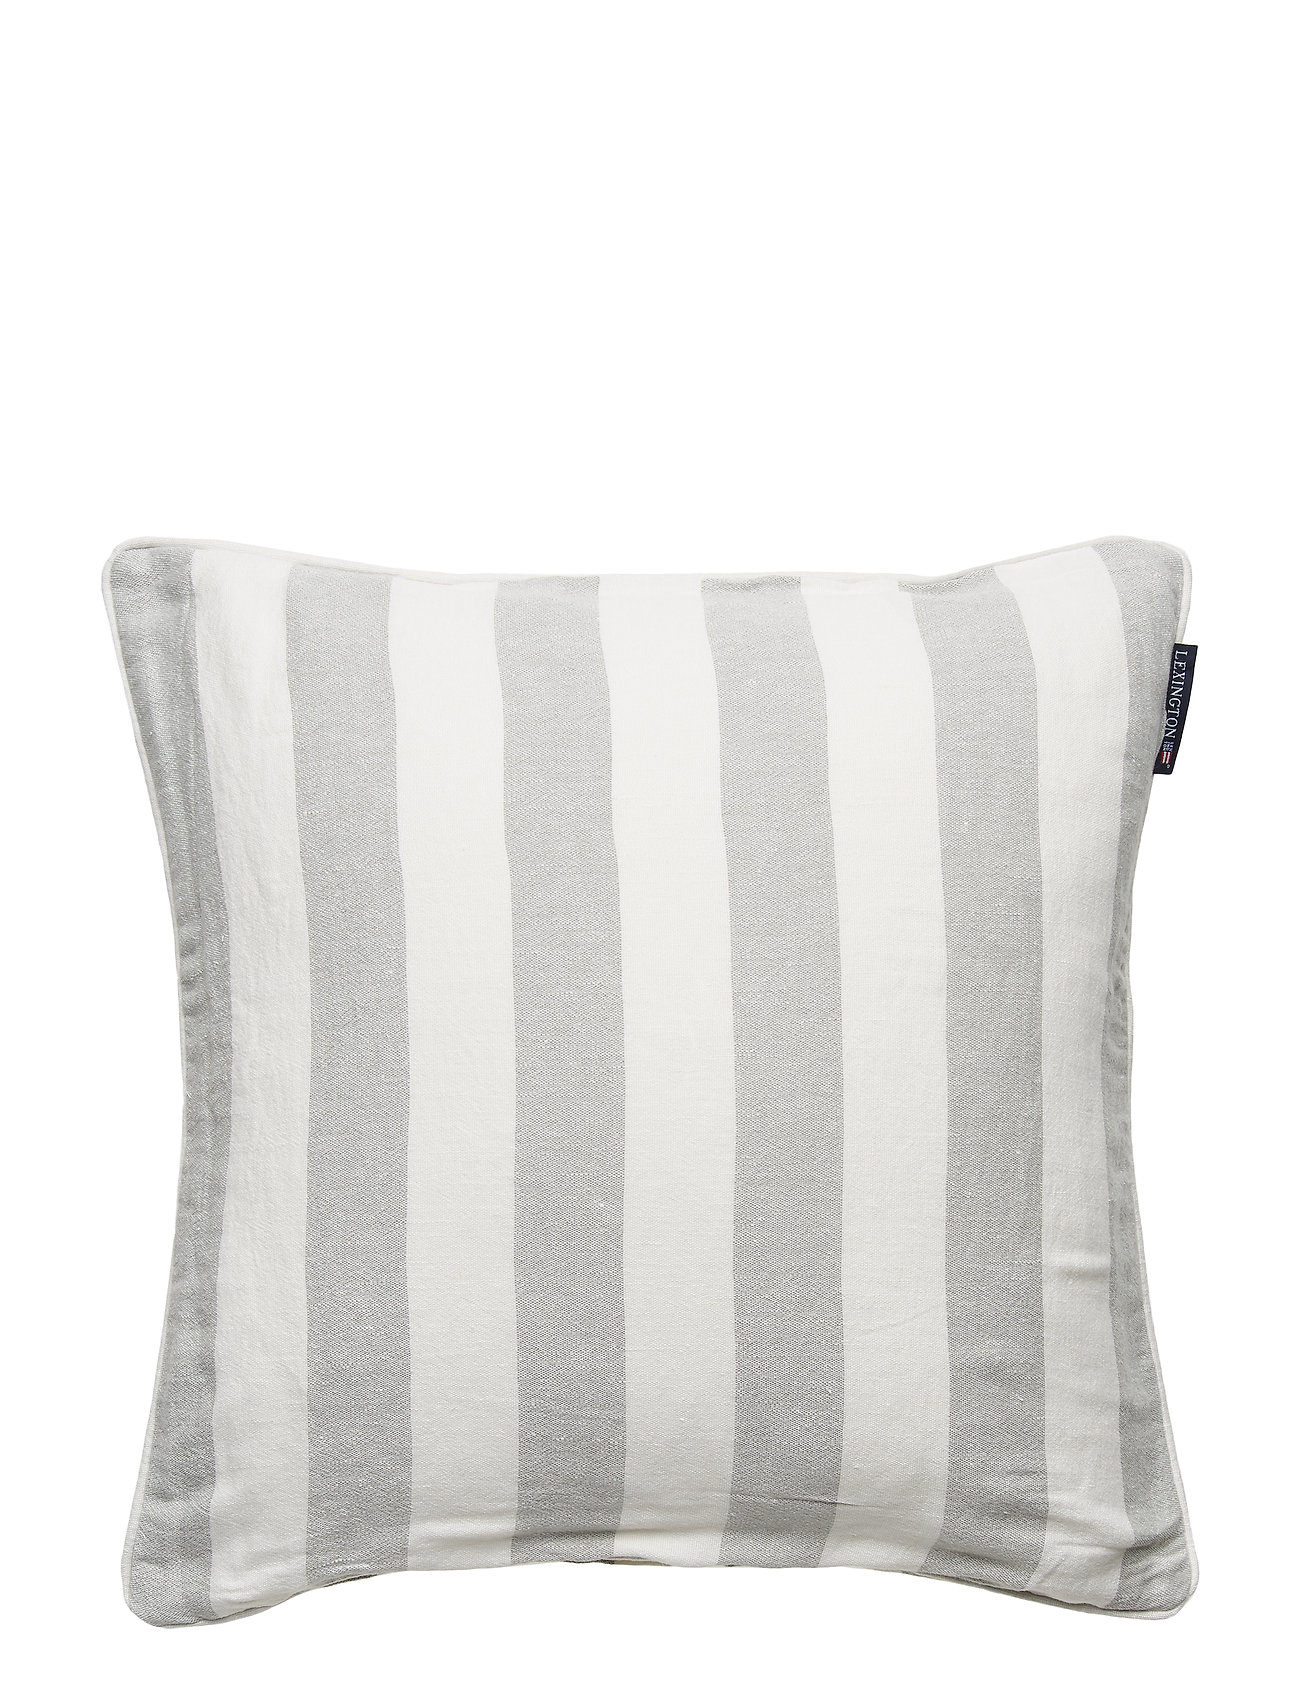 Lexington Home Viscose/Linen Striped Sham - GREEN/WHITE